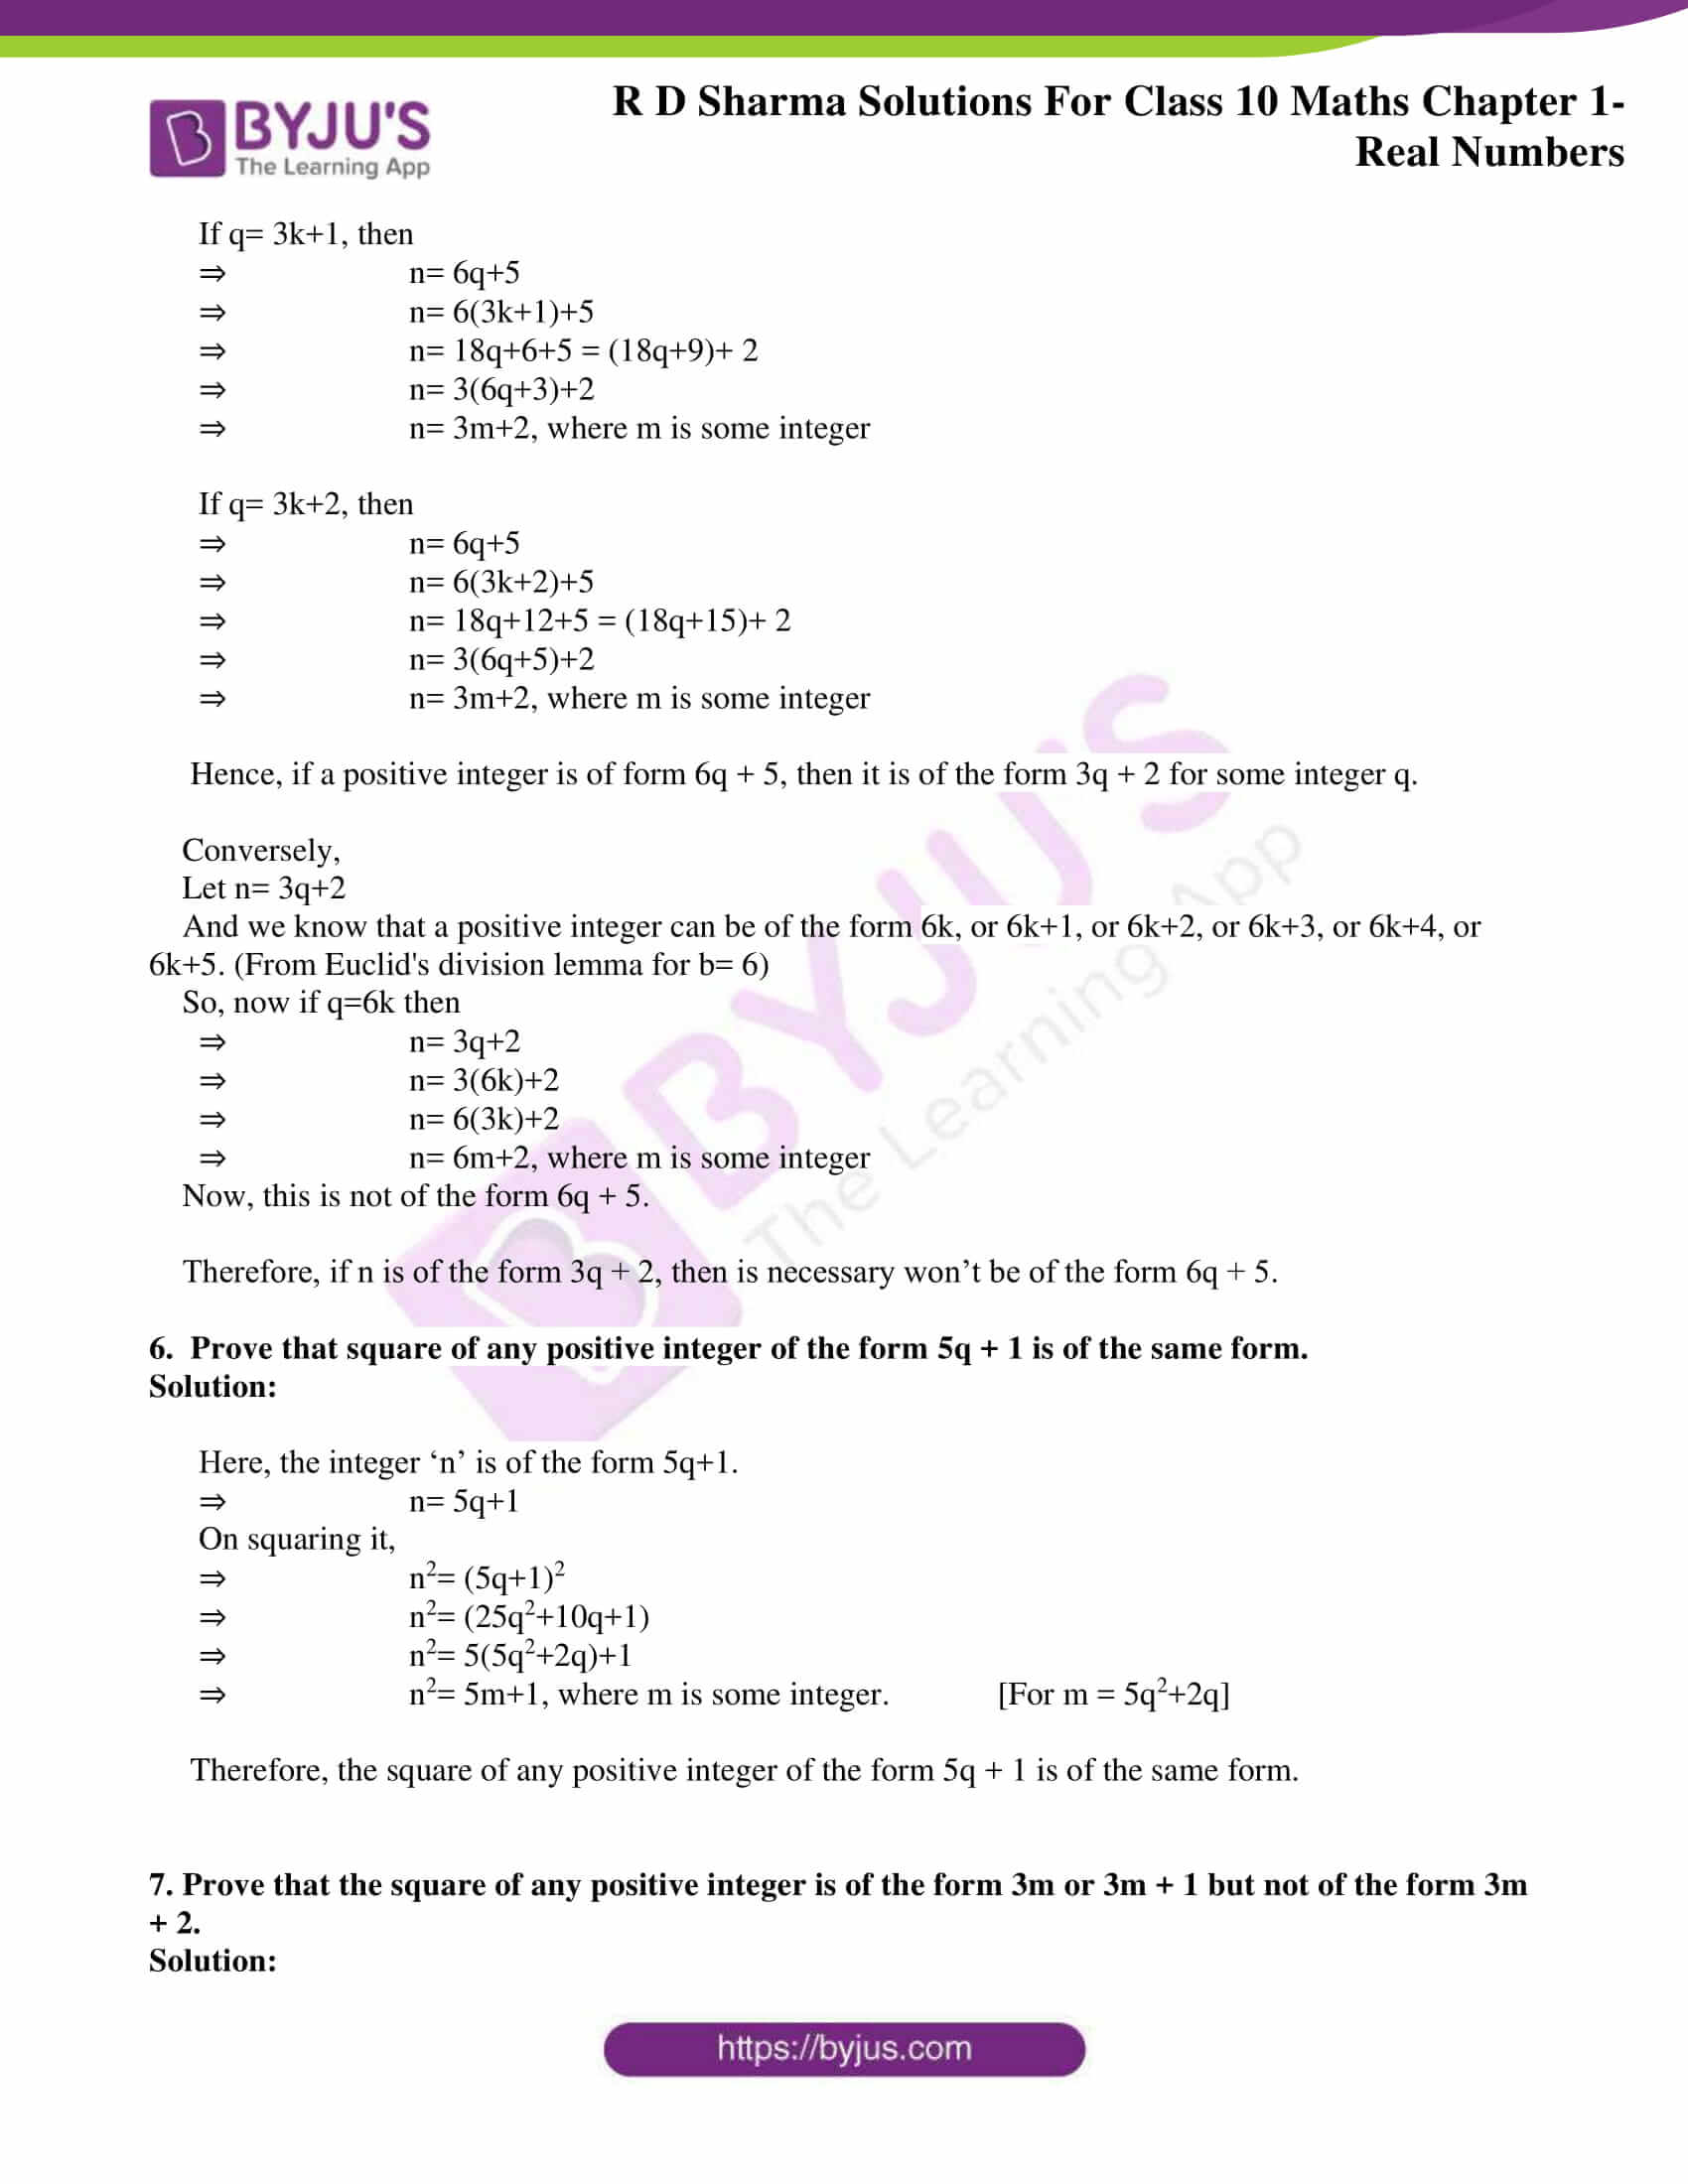 rd sharma solutions for class 10 chapter 1 ex 1.1